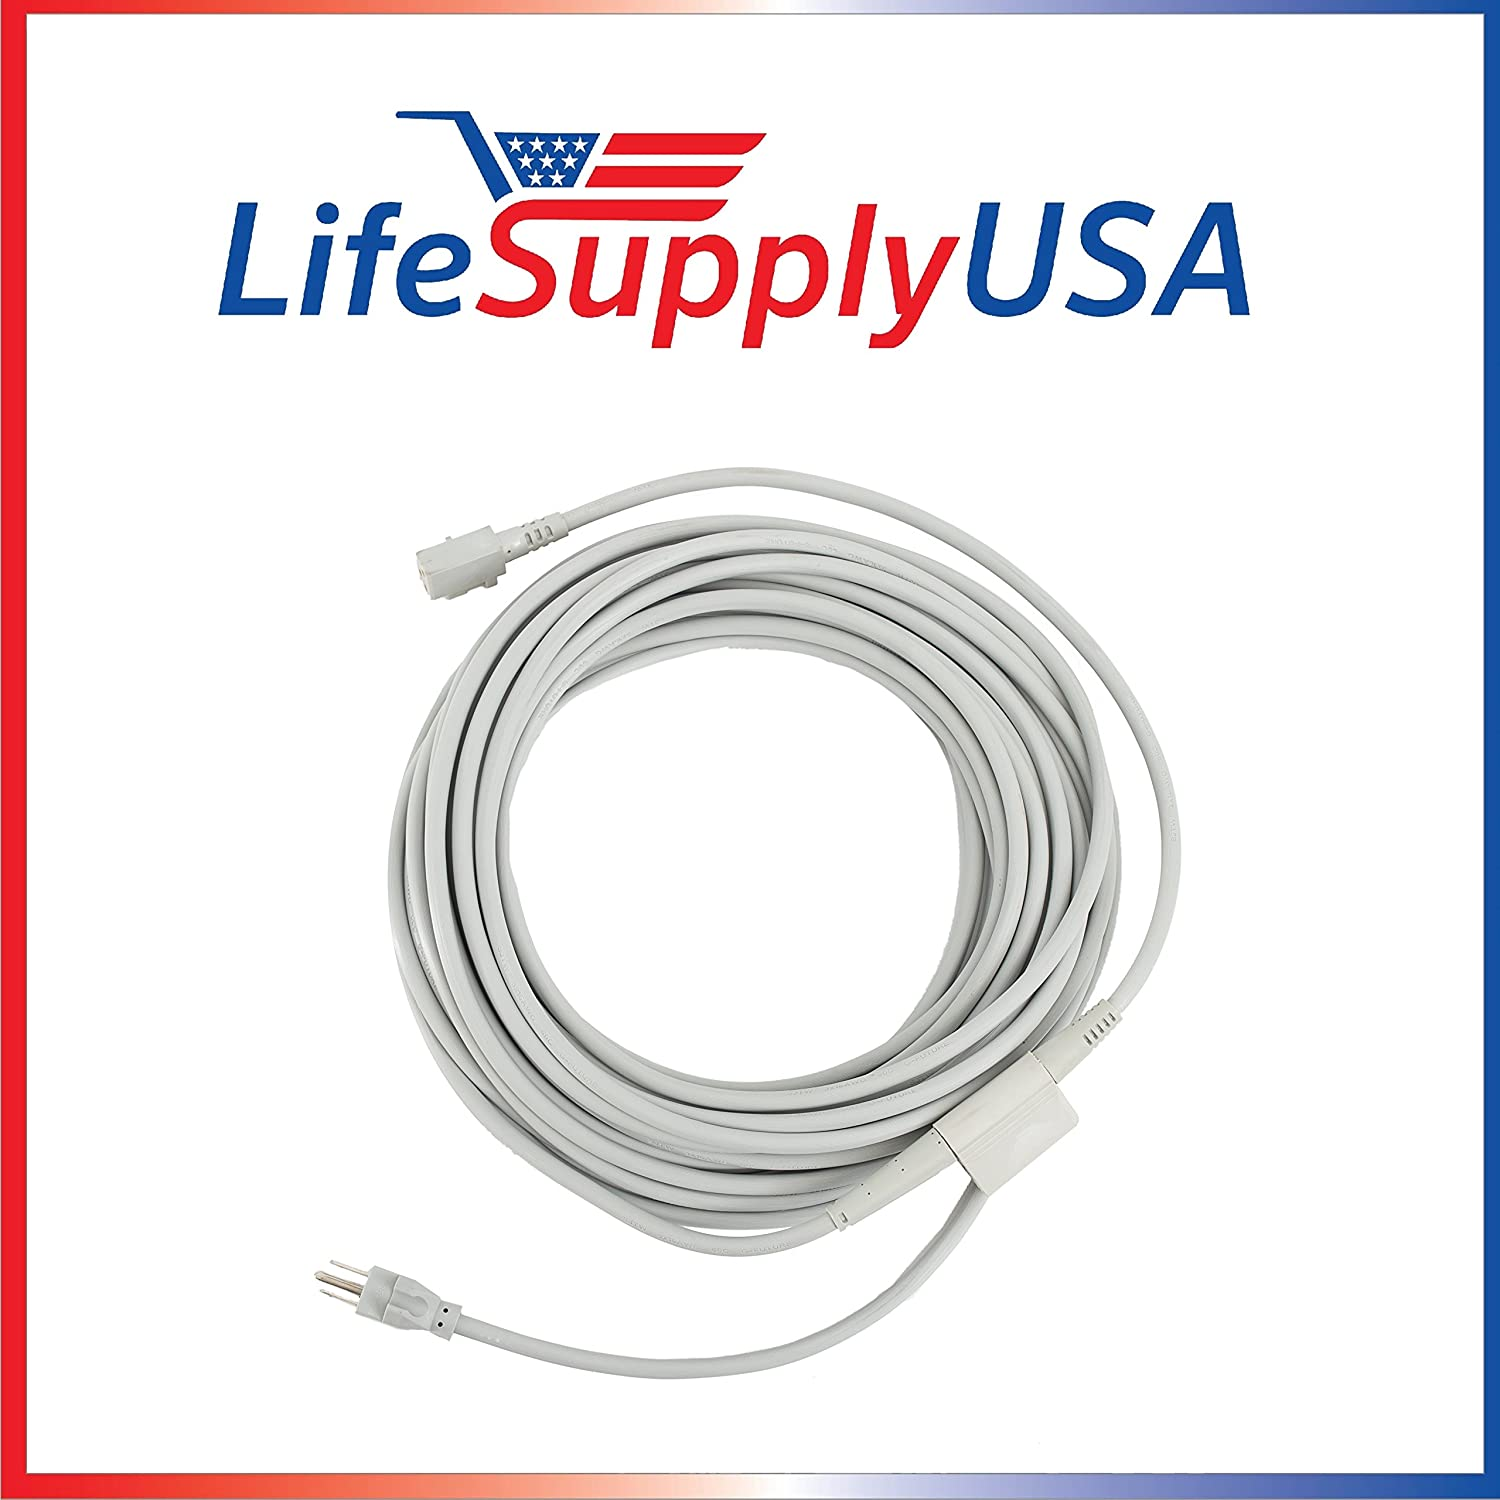 LifeSupplyUSA 50ft Power Cord for Upright Vacuum Cleaners fits Electrolux Prolux 2000, Xtreme U139A, Sanitaire SC6600 and Others, Part 39857 (50 feet, Gray)